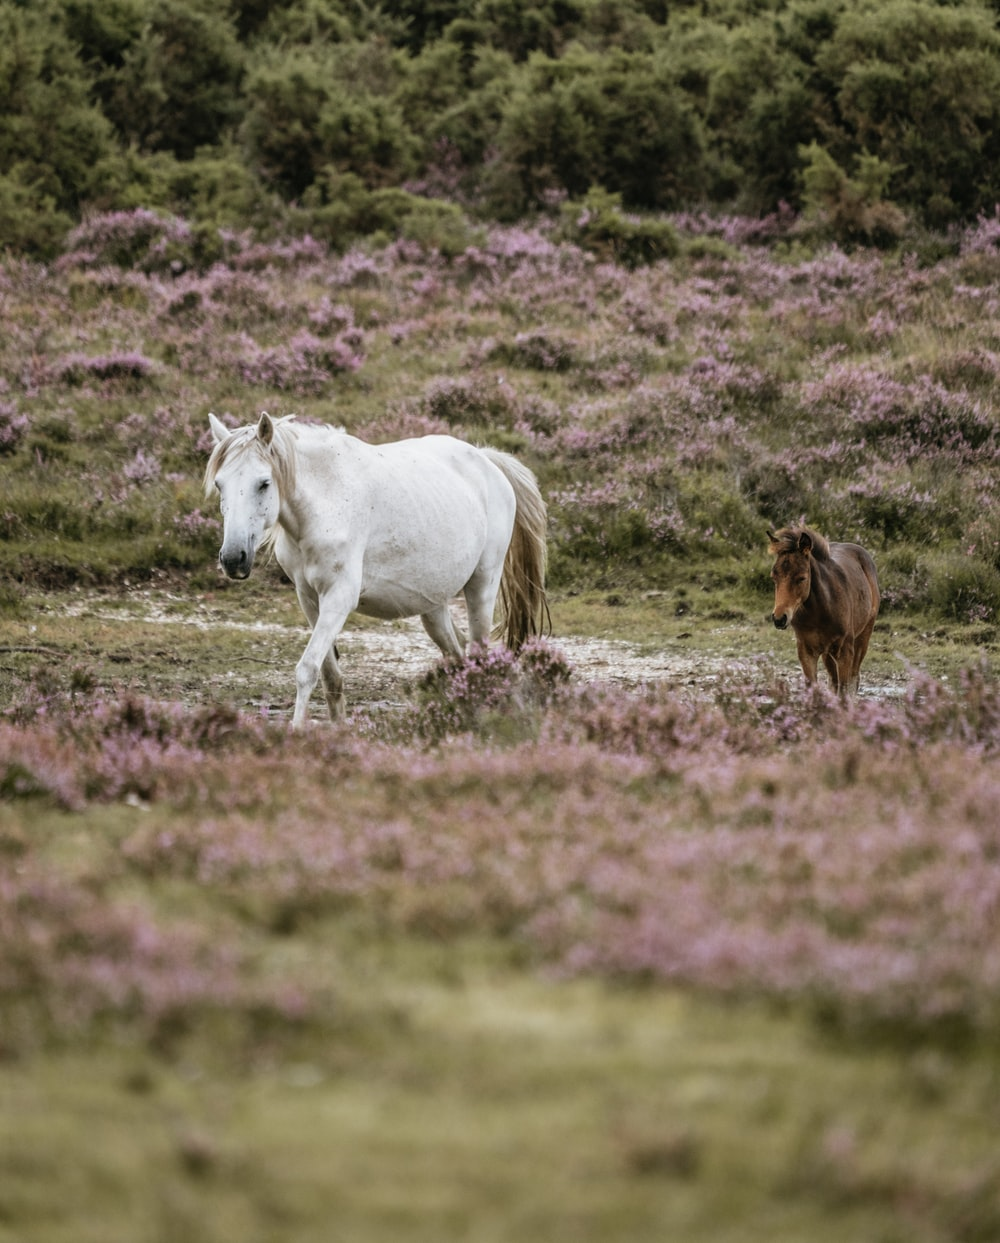 white horse and brown pony walking on grass field